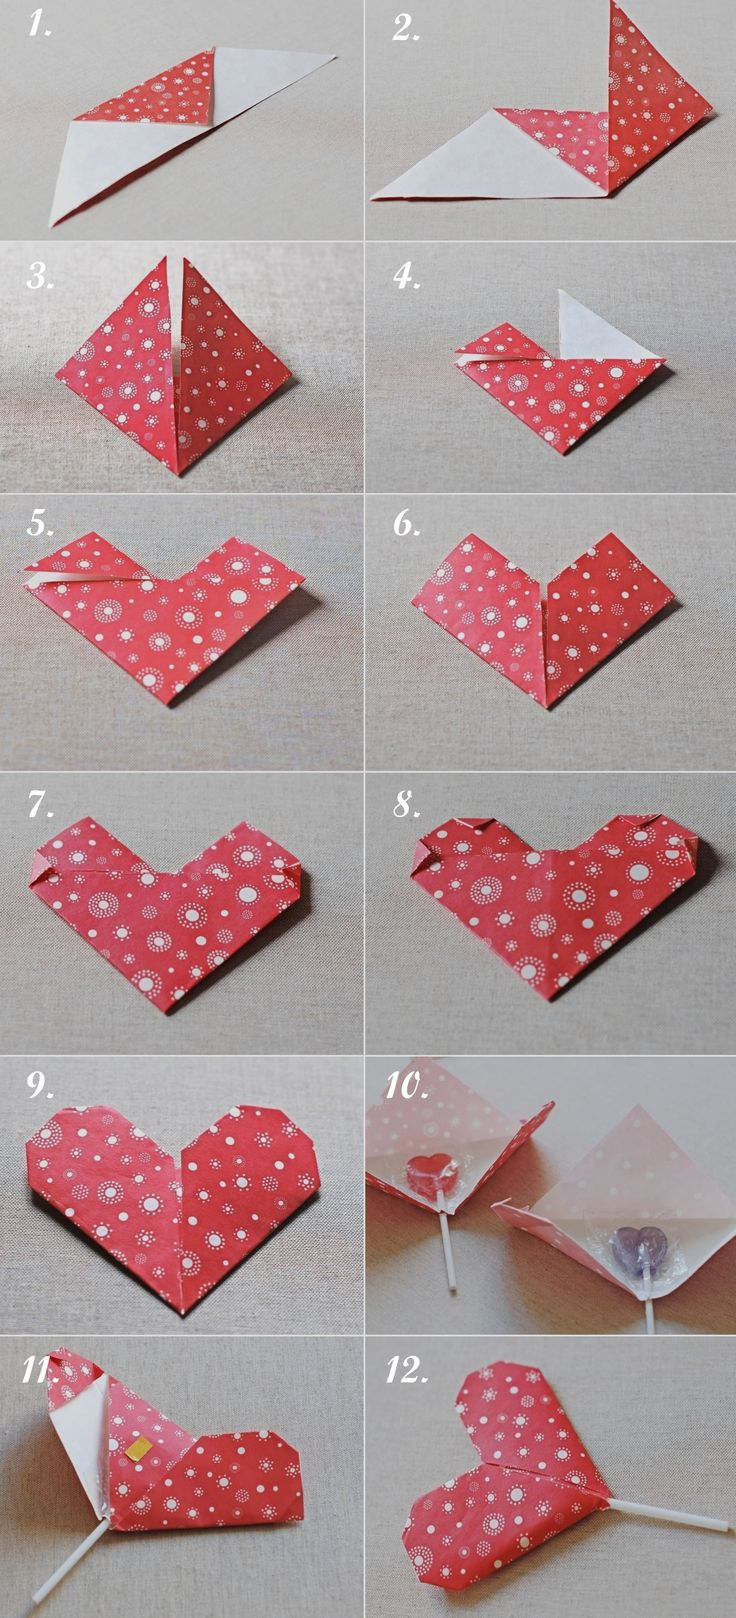 Easy origami, love origami :) used to have my box at attempt at 1000 paper cranes...maybe an idea to start doing them now because of a long road and 1000 would be a nice sendoff.